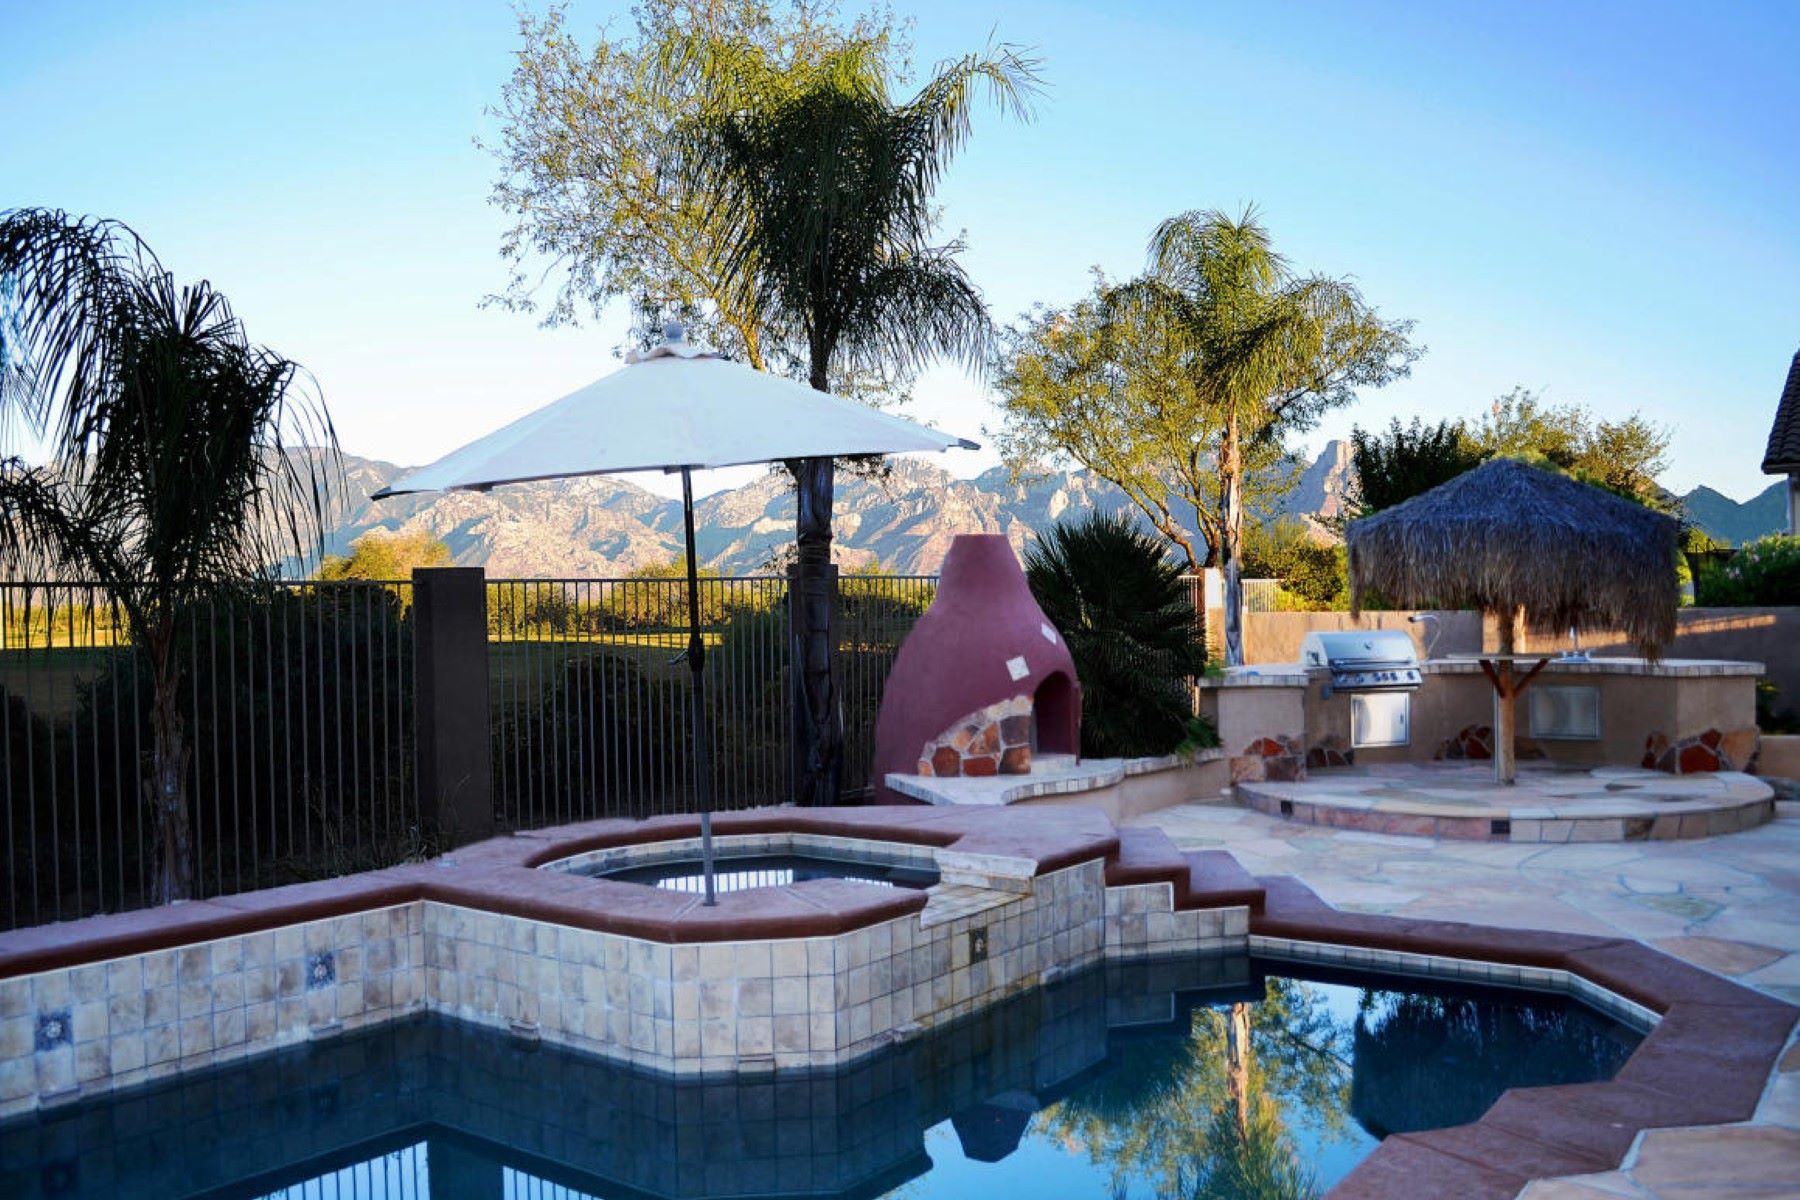 Single Family Home for Sale at Lovely semi-custom home in the desirable gated Siena Community 13660 N Tessali Way Oro Valley, Arizona, 85755 United States